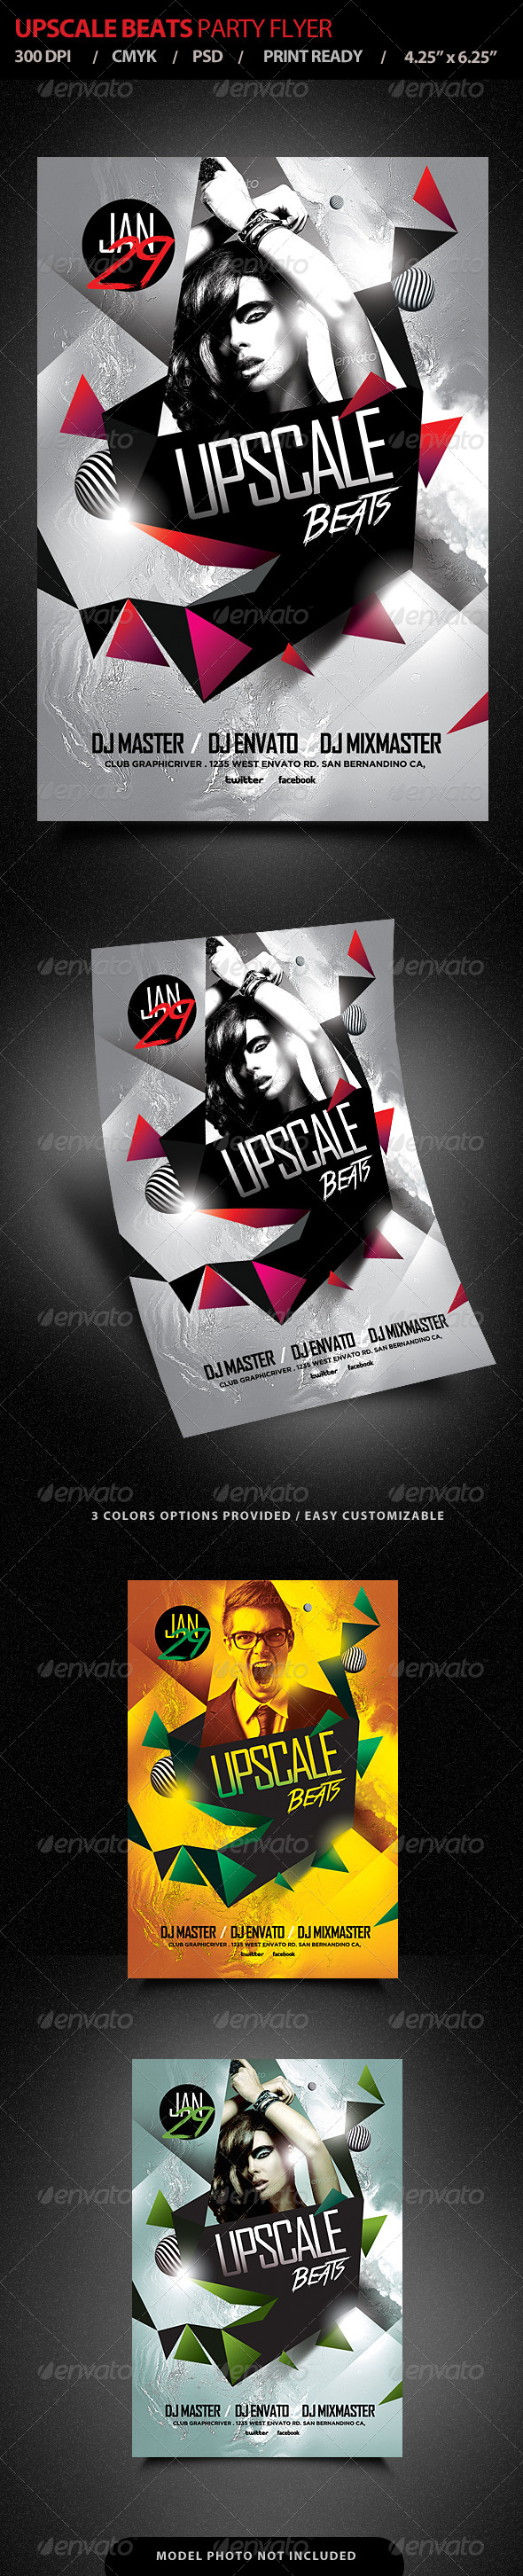 Upscale Beats Club Party Flyer - Events Flyers